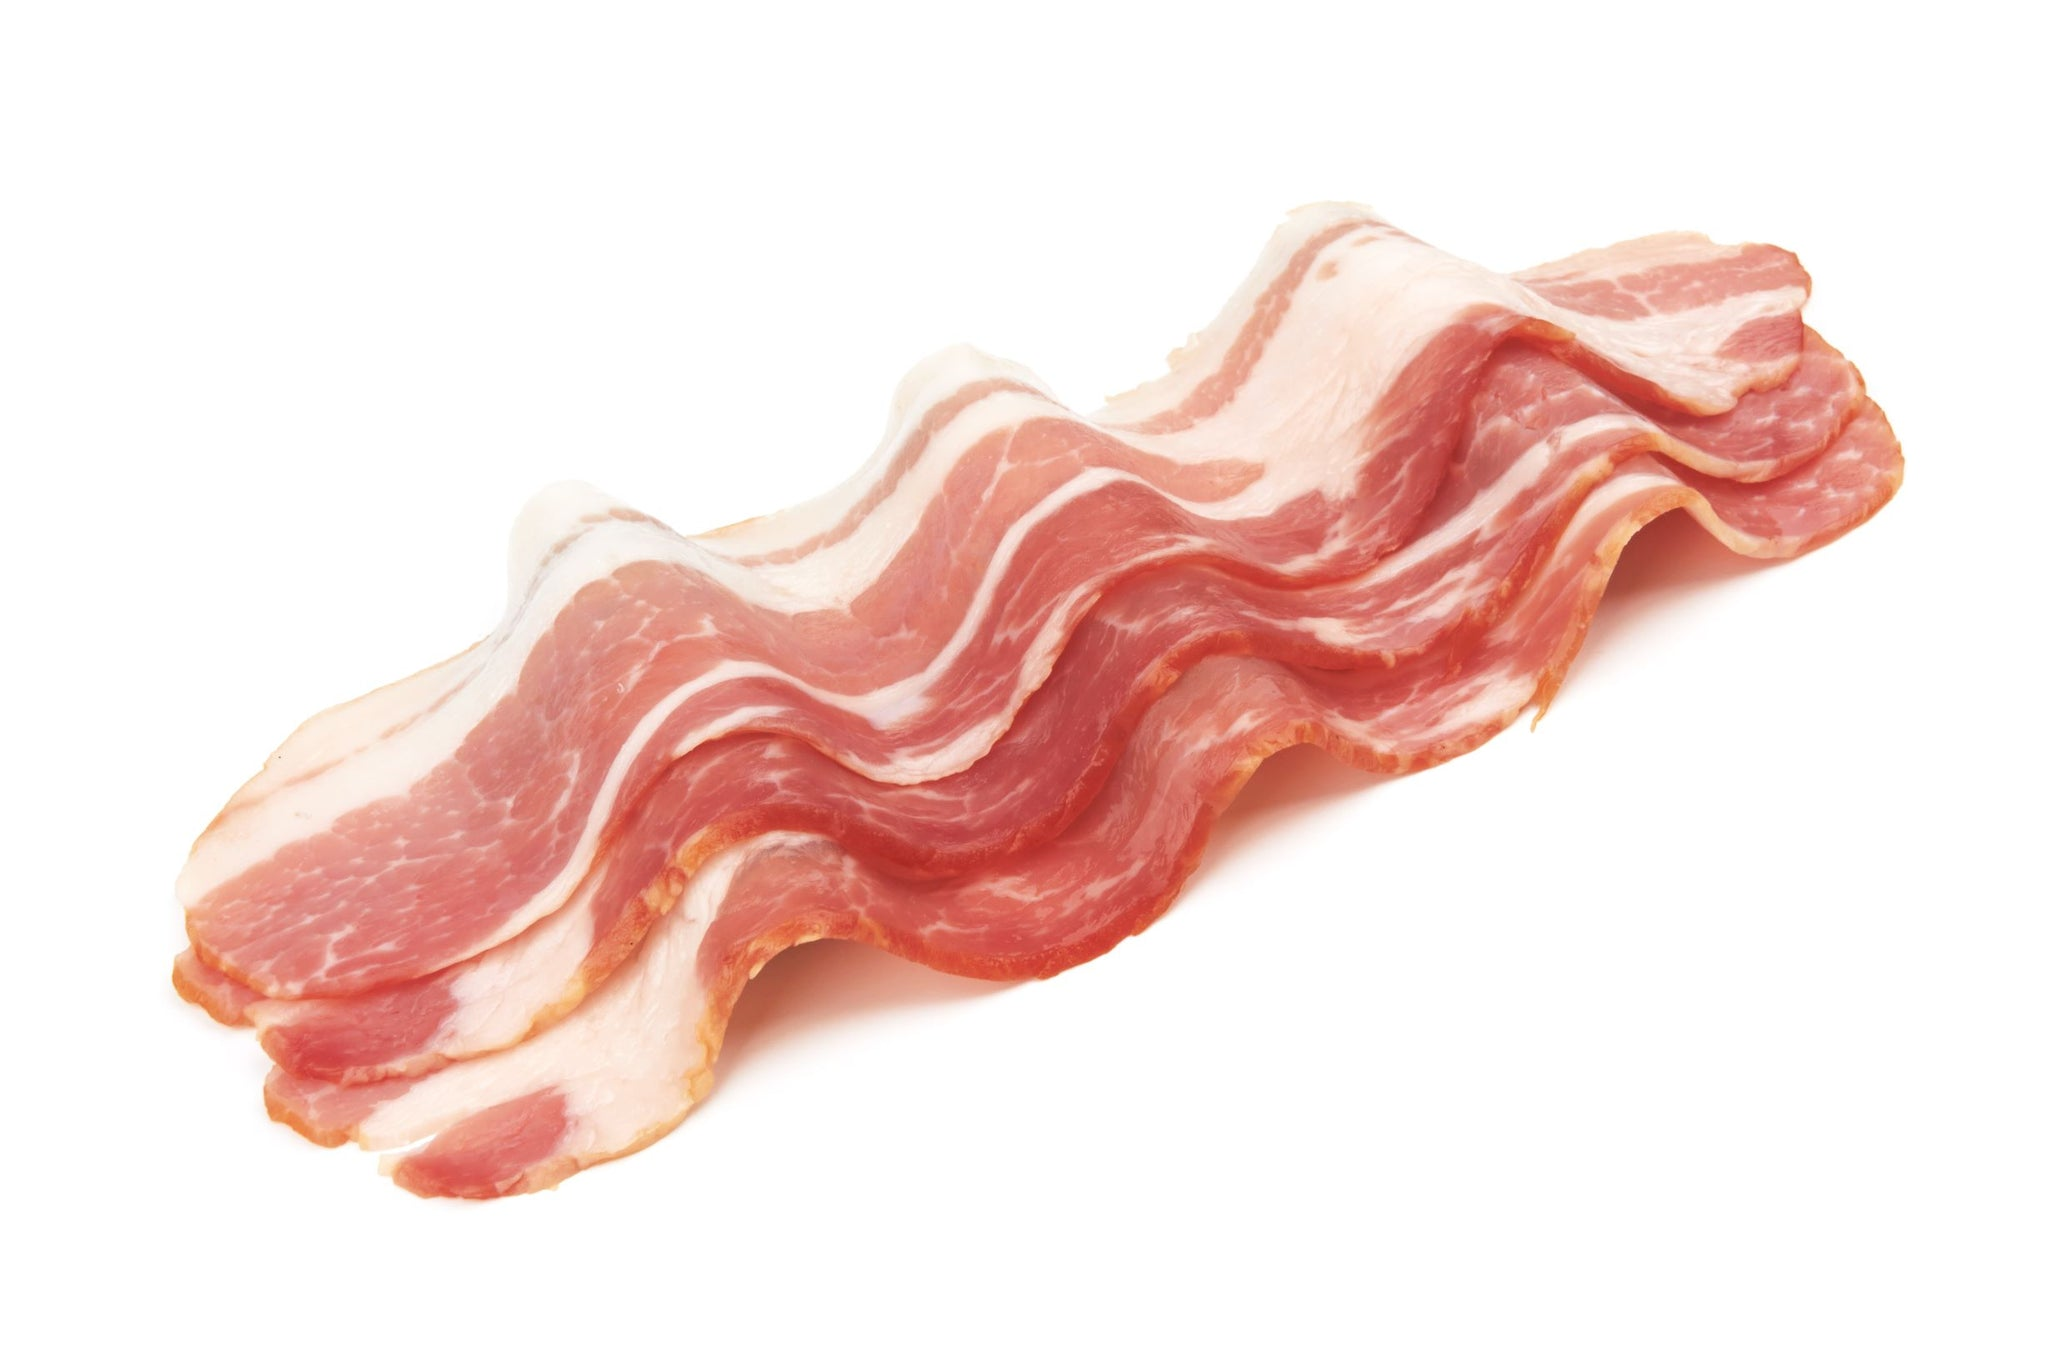 Sysco Classic Fresh Medium Sliced Centre Cut Bacon 5 kg - 1 Pack [$11.80/kg]